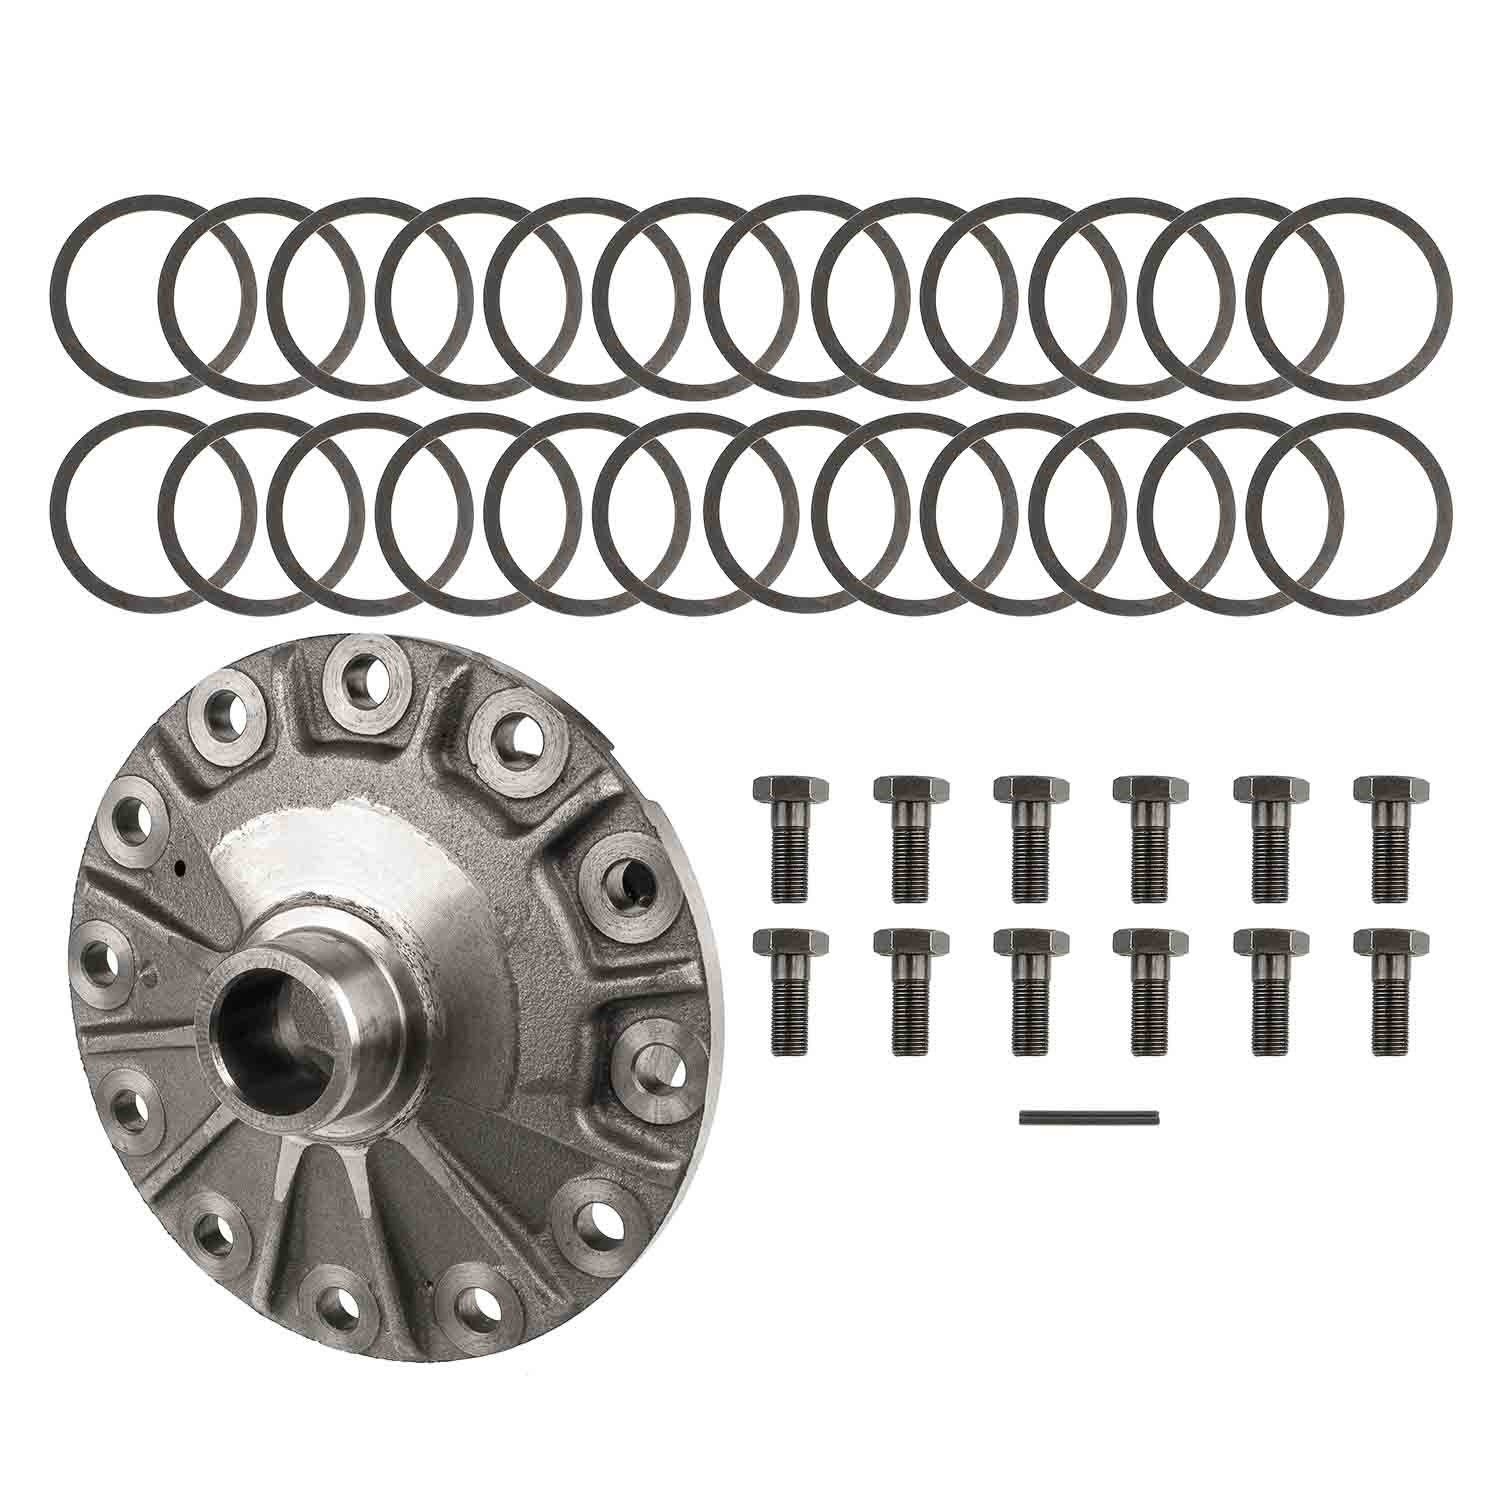 Motive Gear Performance Differential 708032 Differential Gear Case